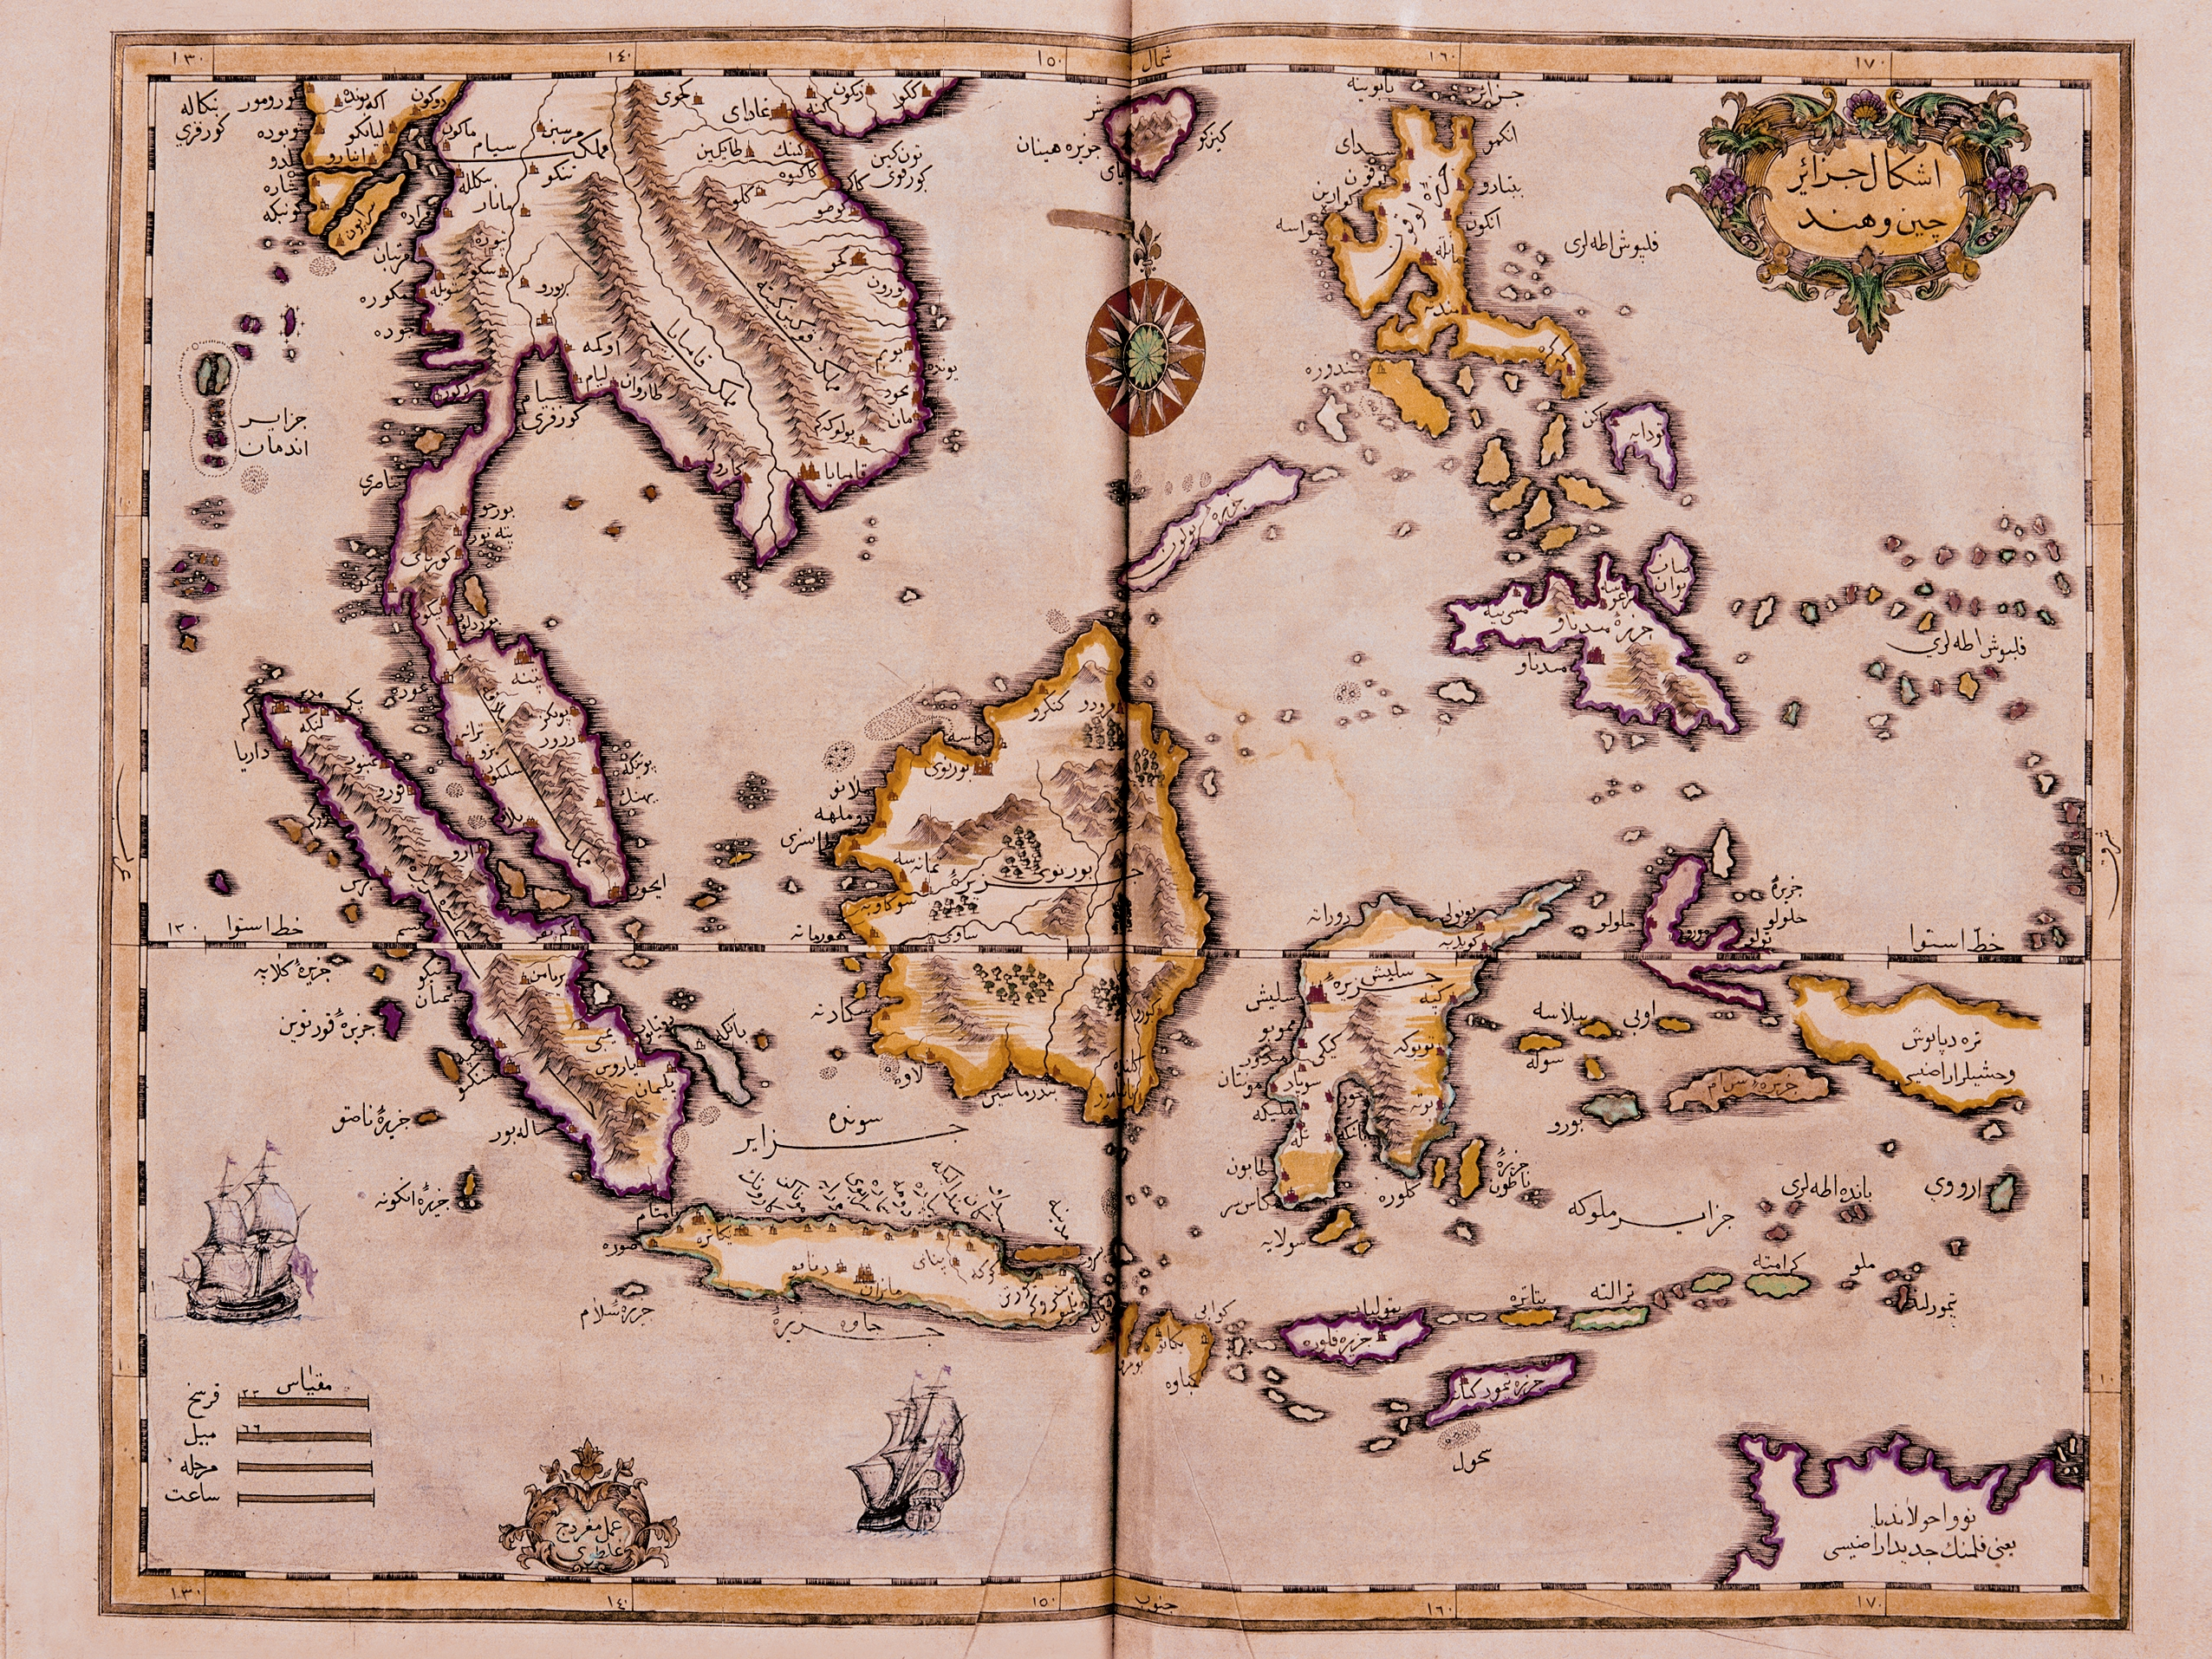 This map of the [[Indian Ocean]] and the [[Chinese Sea]] was engraved in 1728 by the Hungarian-born Ottoman cartographer and publisher [[Ibrahim Muteferrika|Ibrahim Müteferrika]]&#x3B; it is one of a series that illustrated Katip Çelebi's ''Universal Geography'', the first printed book of maps and drawings to appear in the Islamic world.